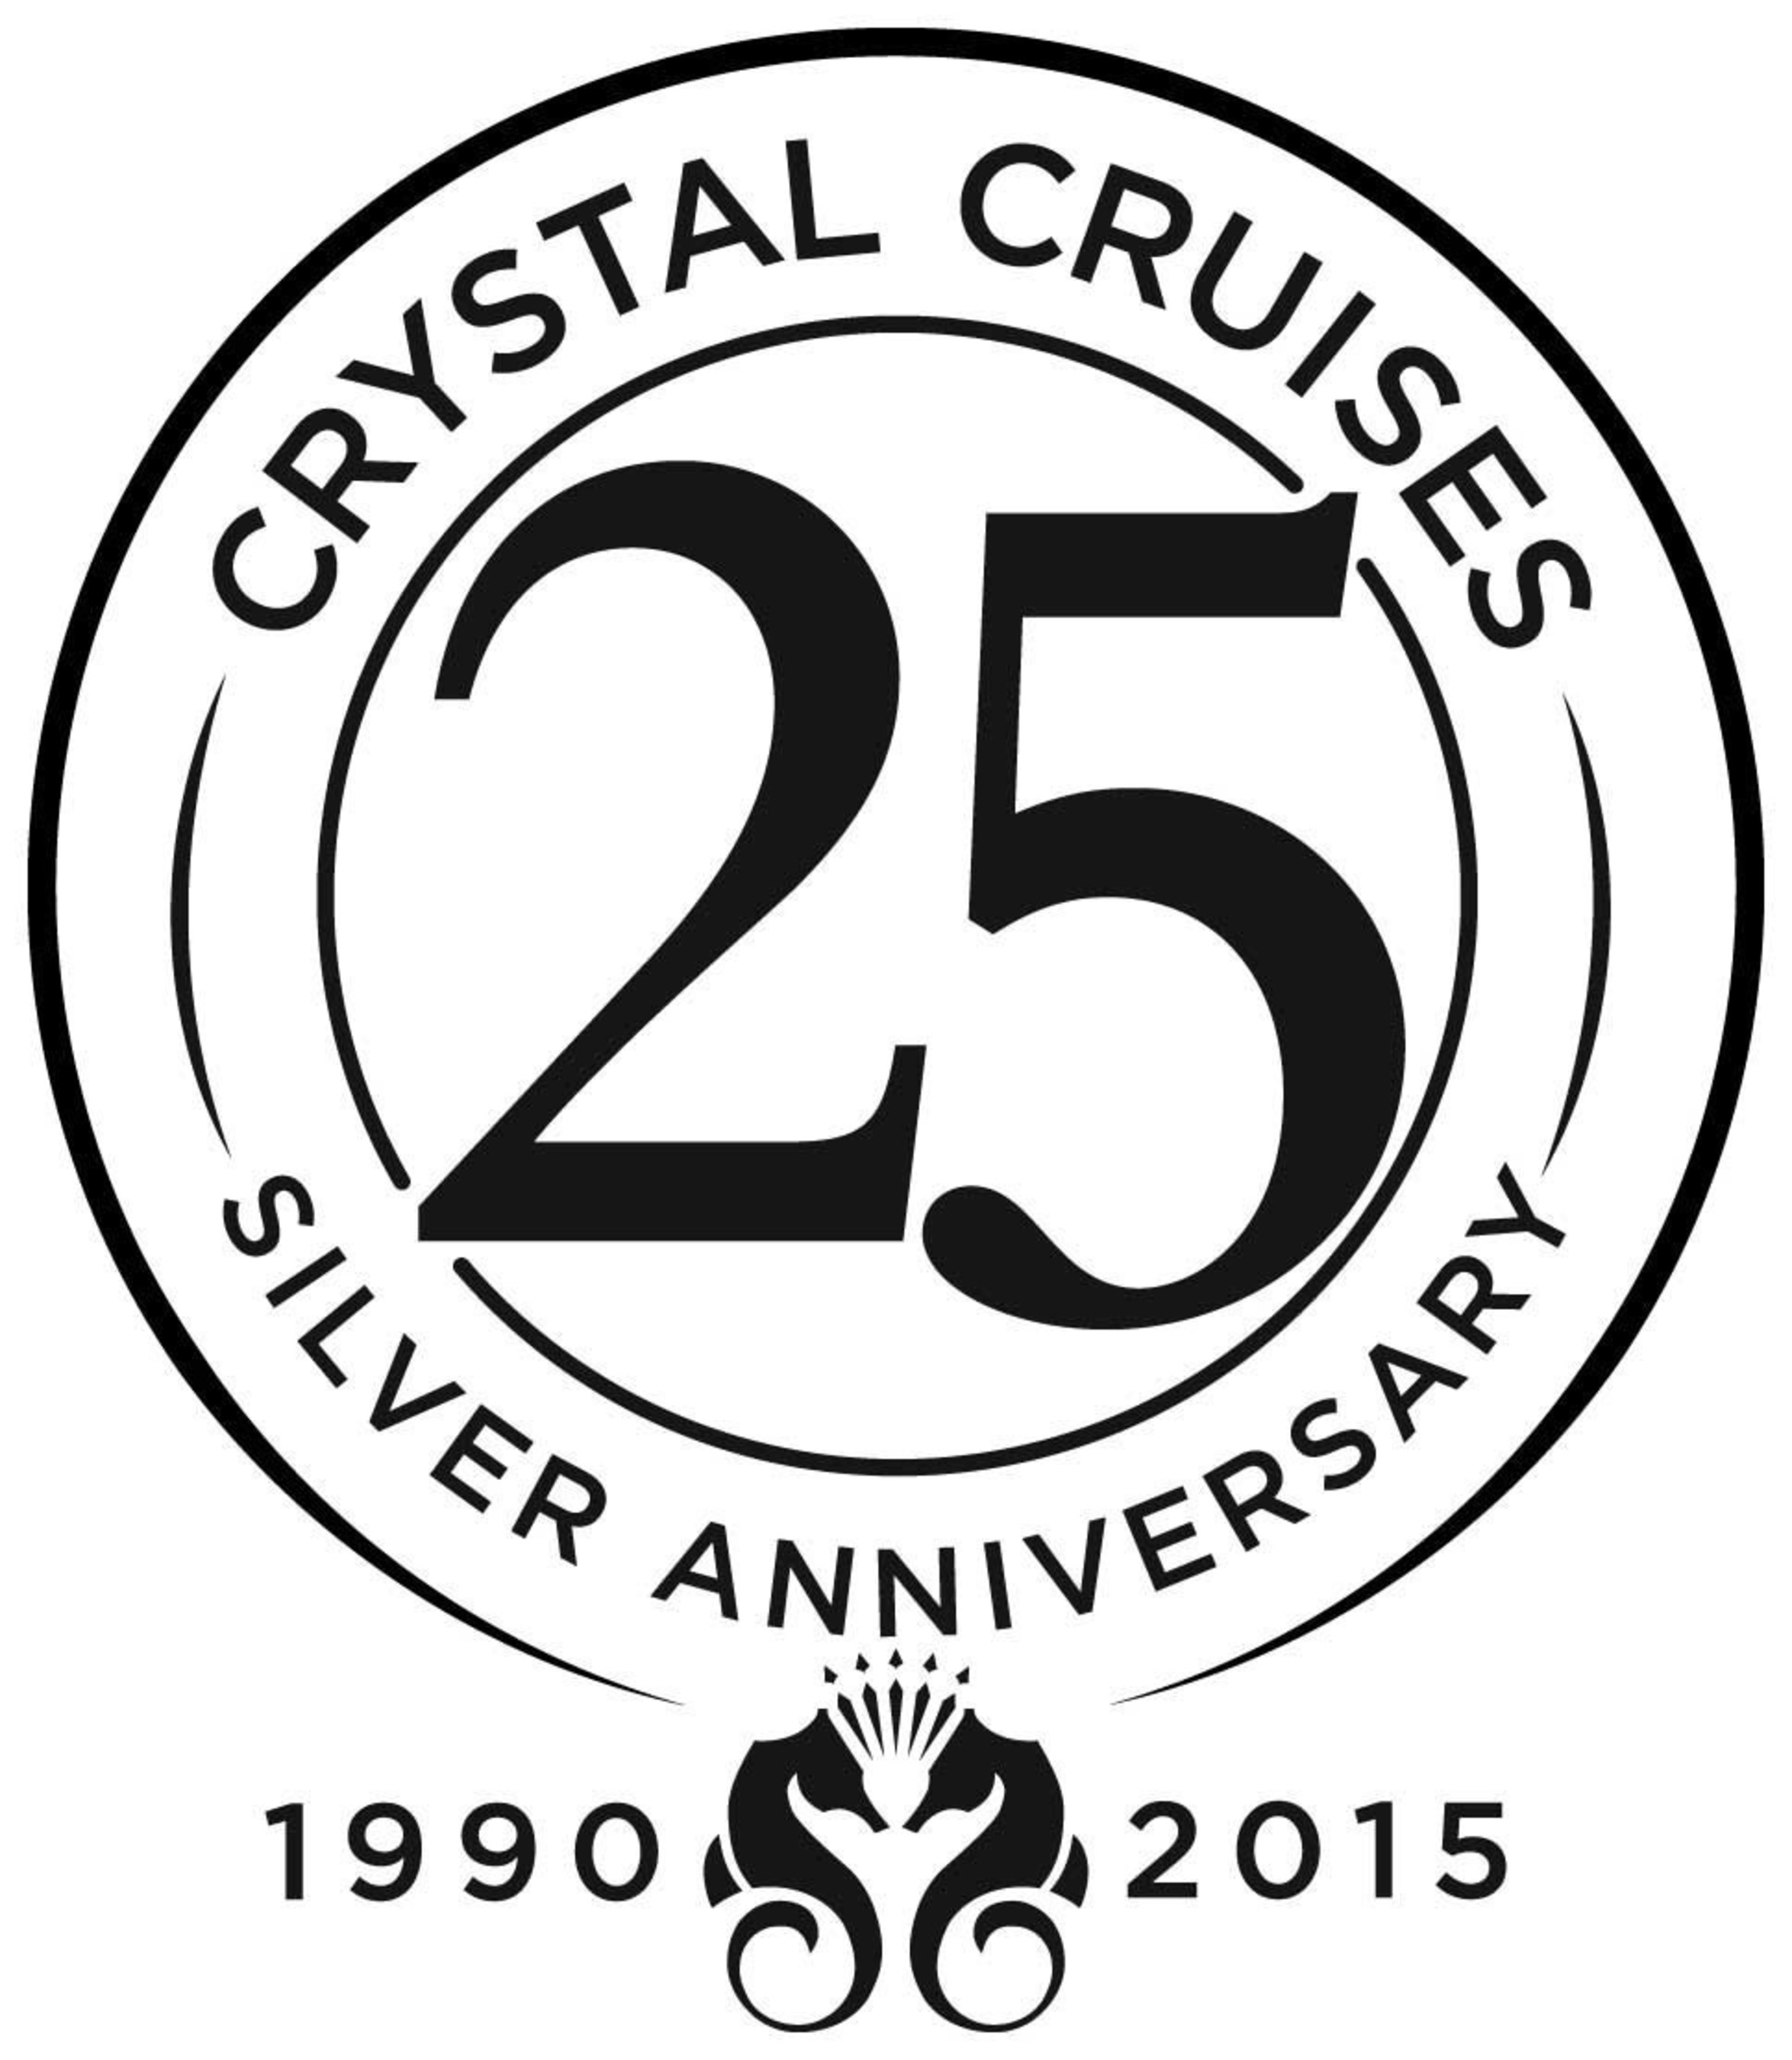 Crystal Cruises will be celebrating 25 years of sailing in 2015 with multiple theme cruises bringing back ...